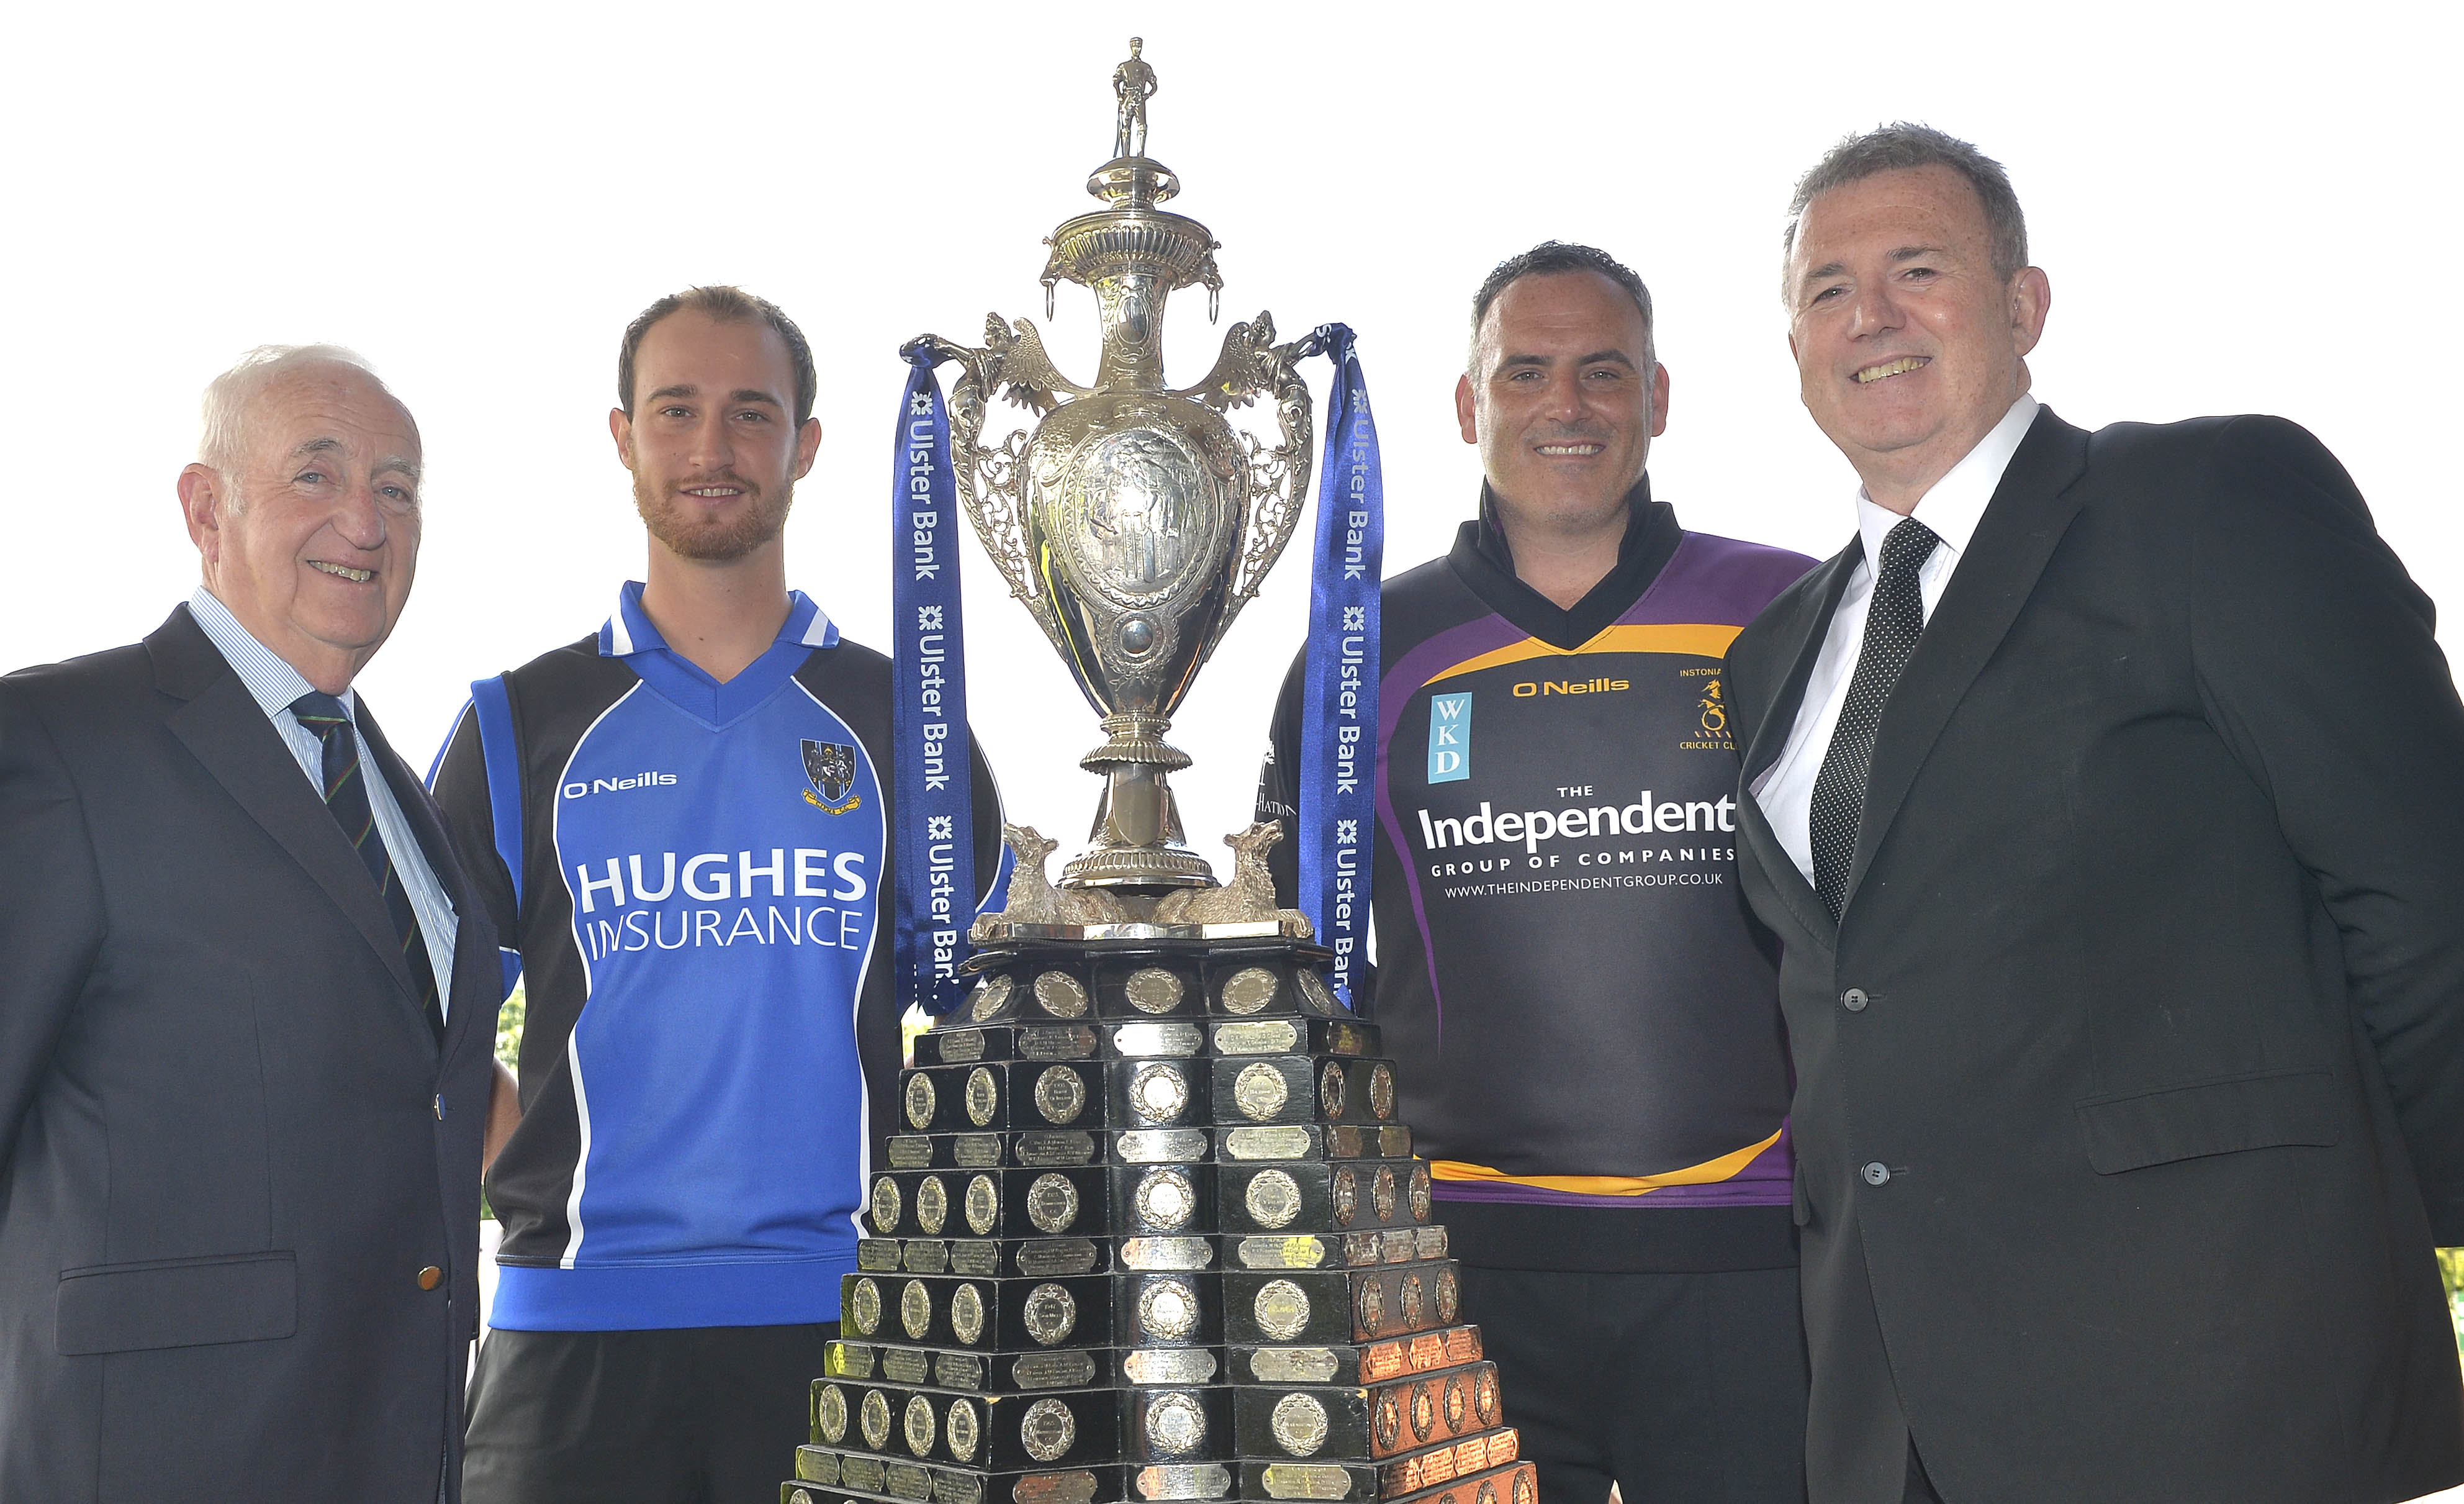 Billy Boyd, President of the NCU, Chris Dougherty, captain of CIYMS, Neil Russell, captain of Instonians, and Stephen Cruise of Ulster Bank (© Rowland White)